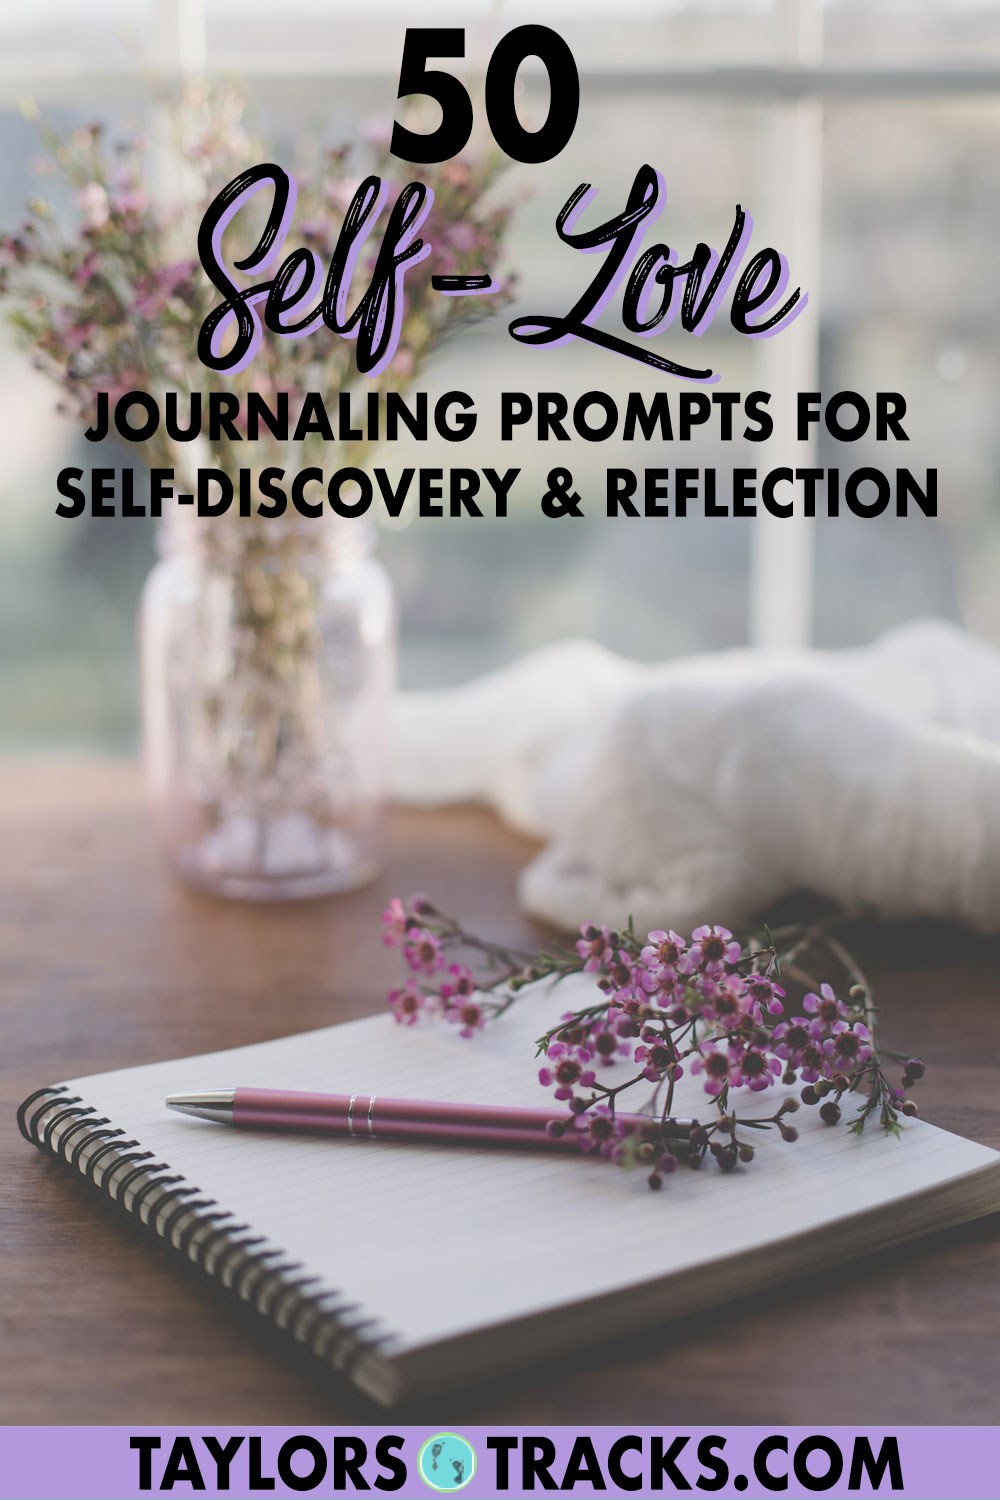 These self-love journaling prompts will take you on a journey of self-discovery and reflection. Learn how to love yourself through these eye-opening self-love journal prompts. Click to start journaling!